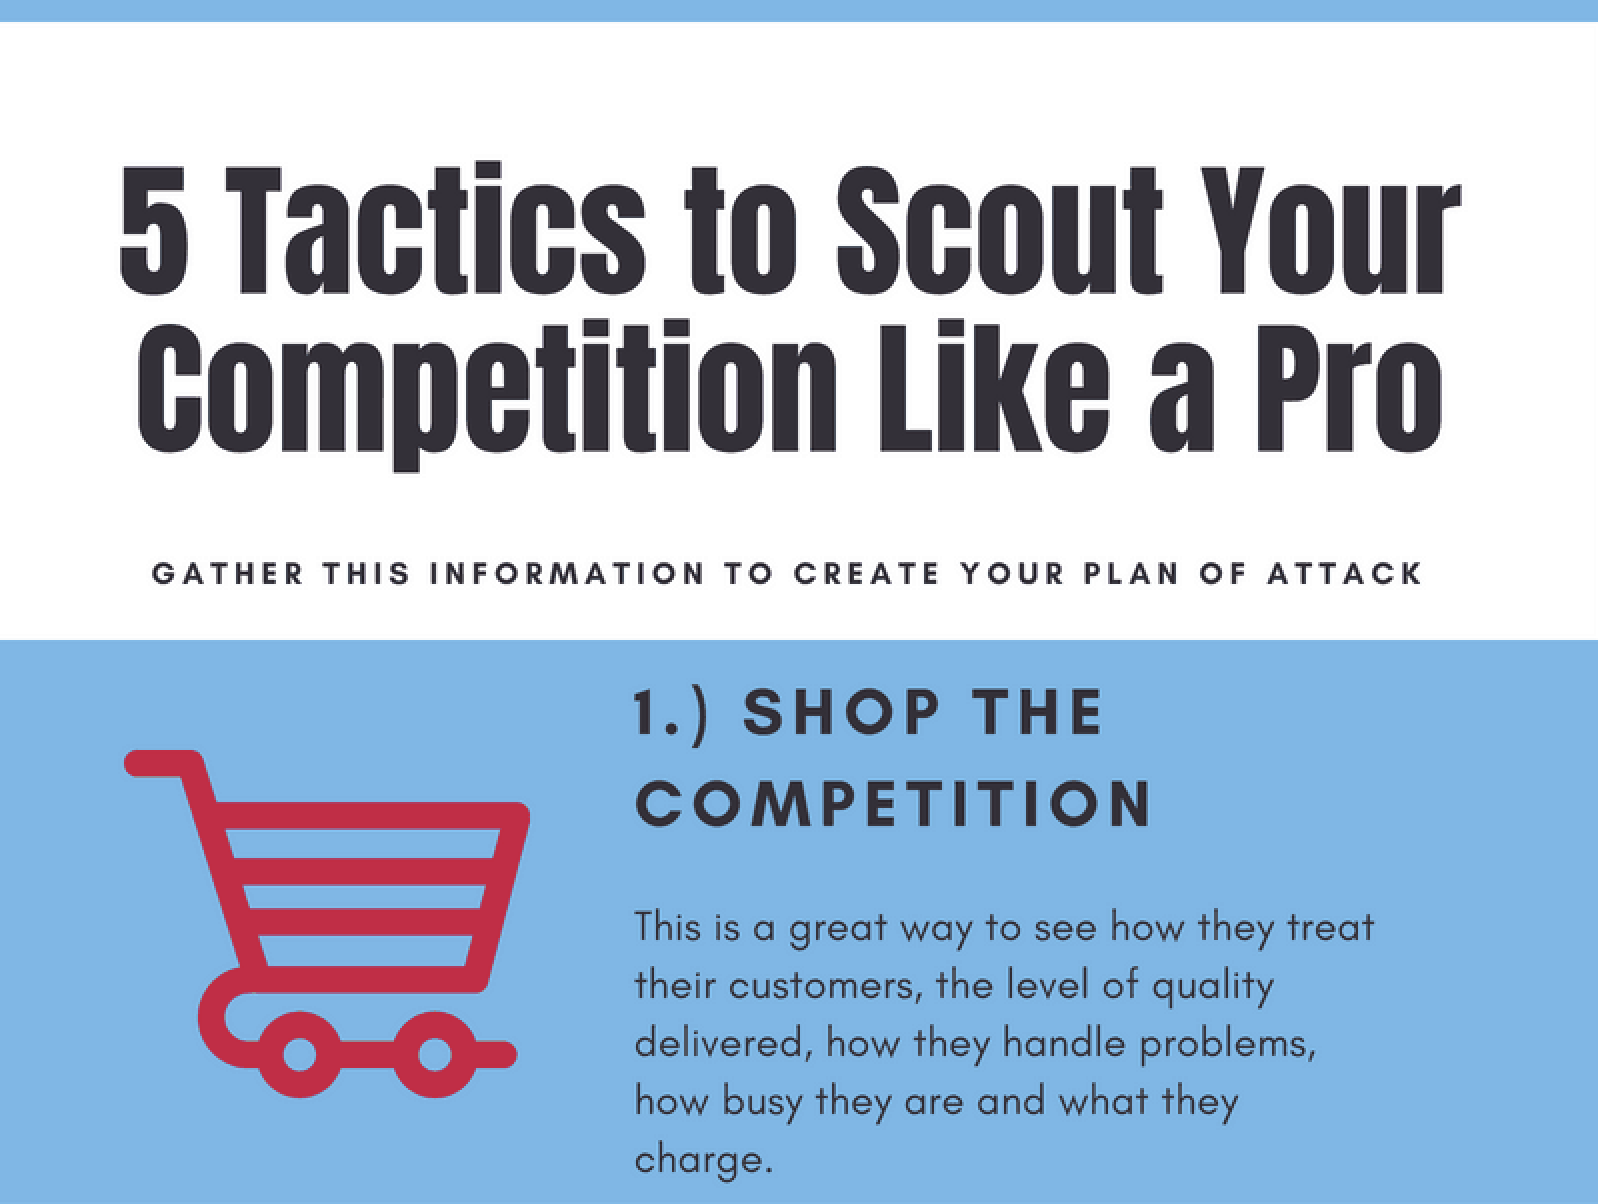 5 Tactics to Scout Your Competition Like a Pro